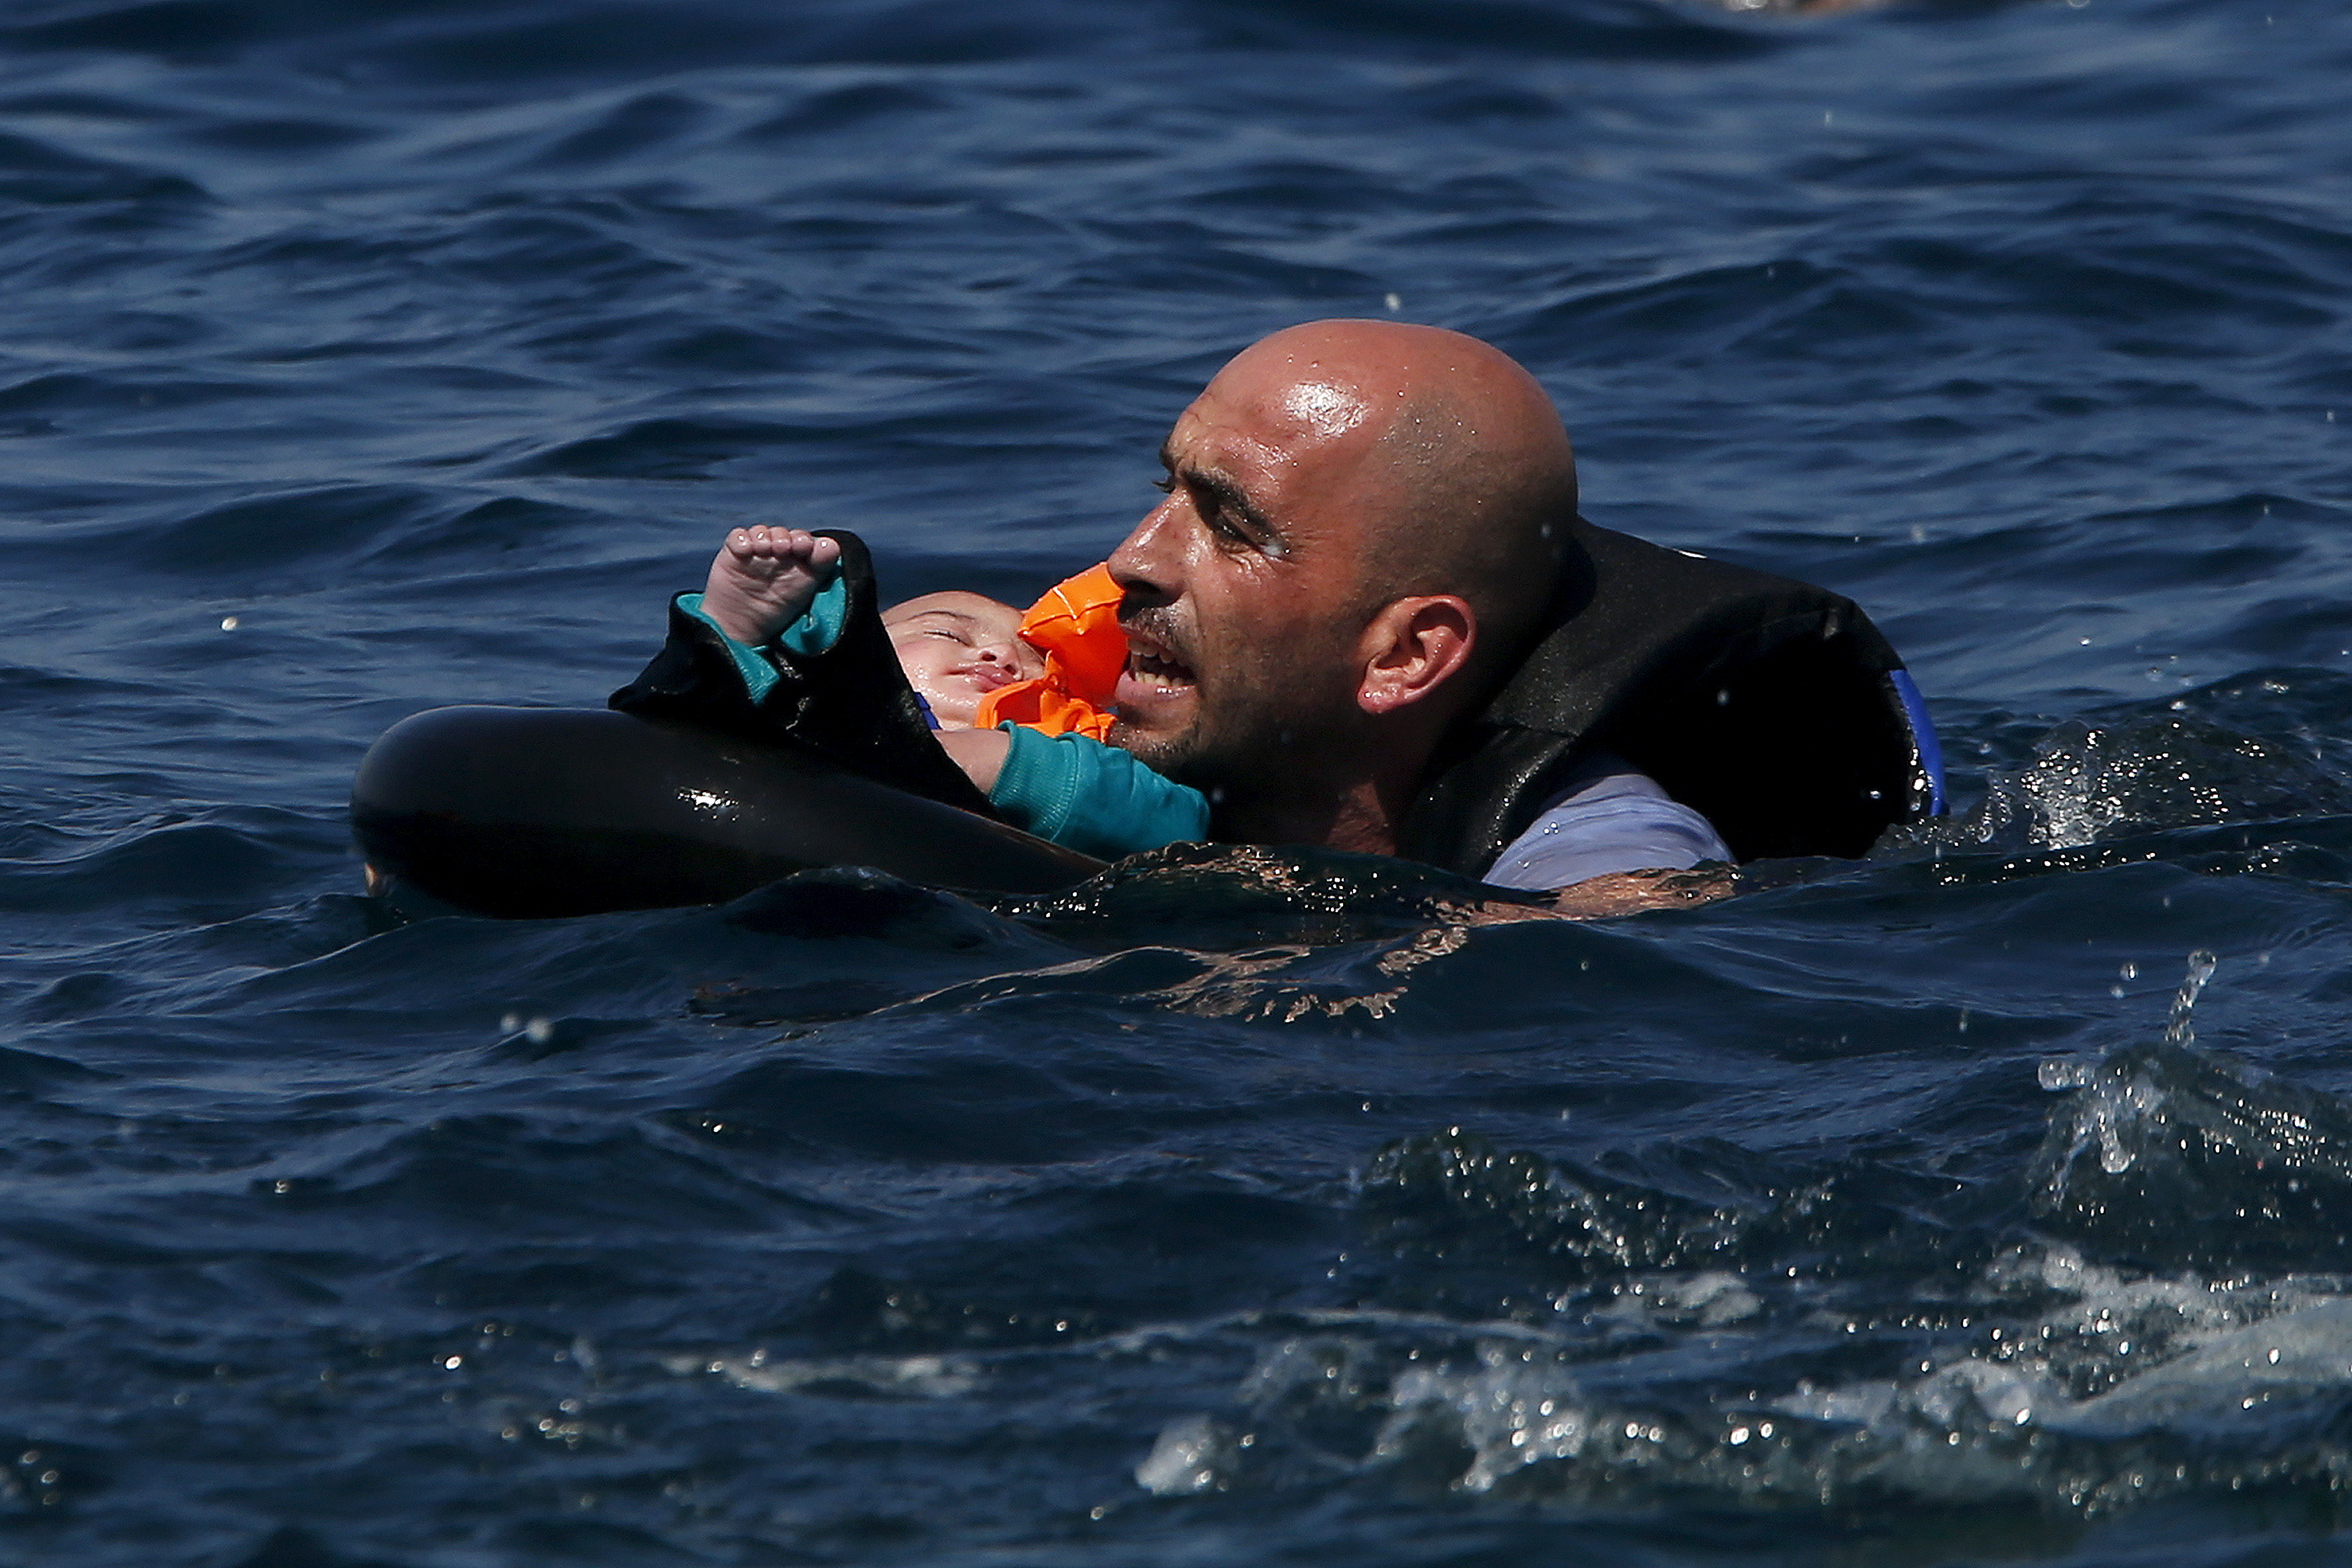 A Syrian refugee holding a baby in a lifetube swims towards the shore after their dinghy deflated some 100m away before reaching the Greek island of Lesbos, September 13, 2015. Of the record total of 432,761 refugees and migrants making the perilous journey across the Mediterranean to Europe so far this year, an estimated 309,000 people had arrived by sea in Greece, the International Organization for Migration (IMO) said on Friday. About half of those crossing the Mediterranean are Syrians fleeing civil war, according to the United Nations refugee agency. Photo by Alkis Konstantinidis/Reuters